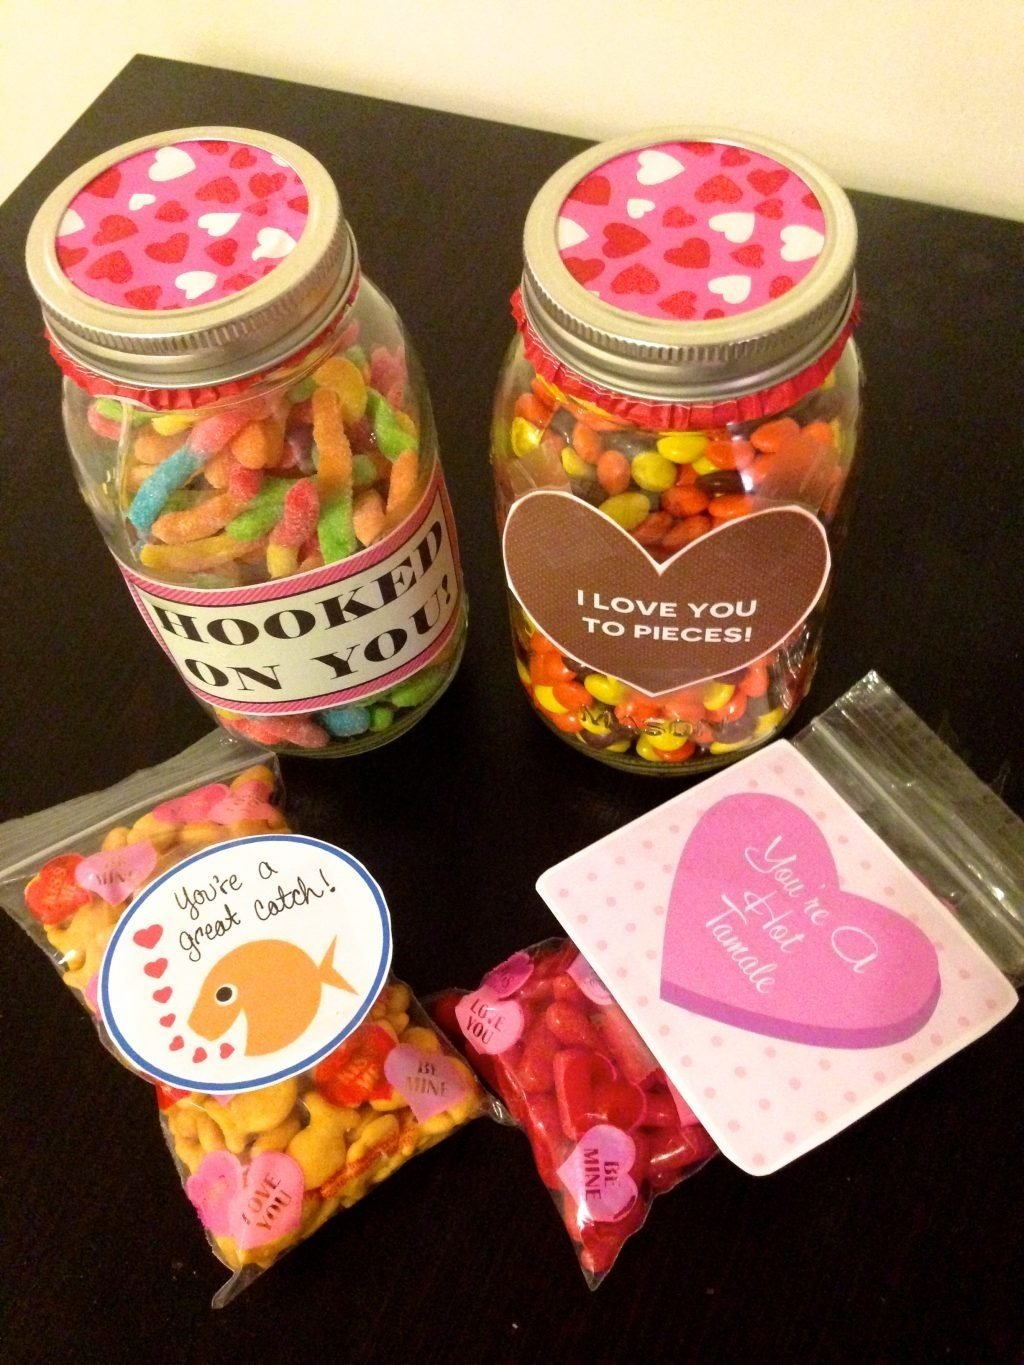 10 Lovable Unique Valentines Day Ideas For Him special valentines day ideas for him him the perfect valentines day 4 2020